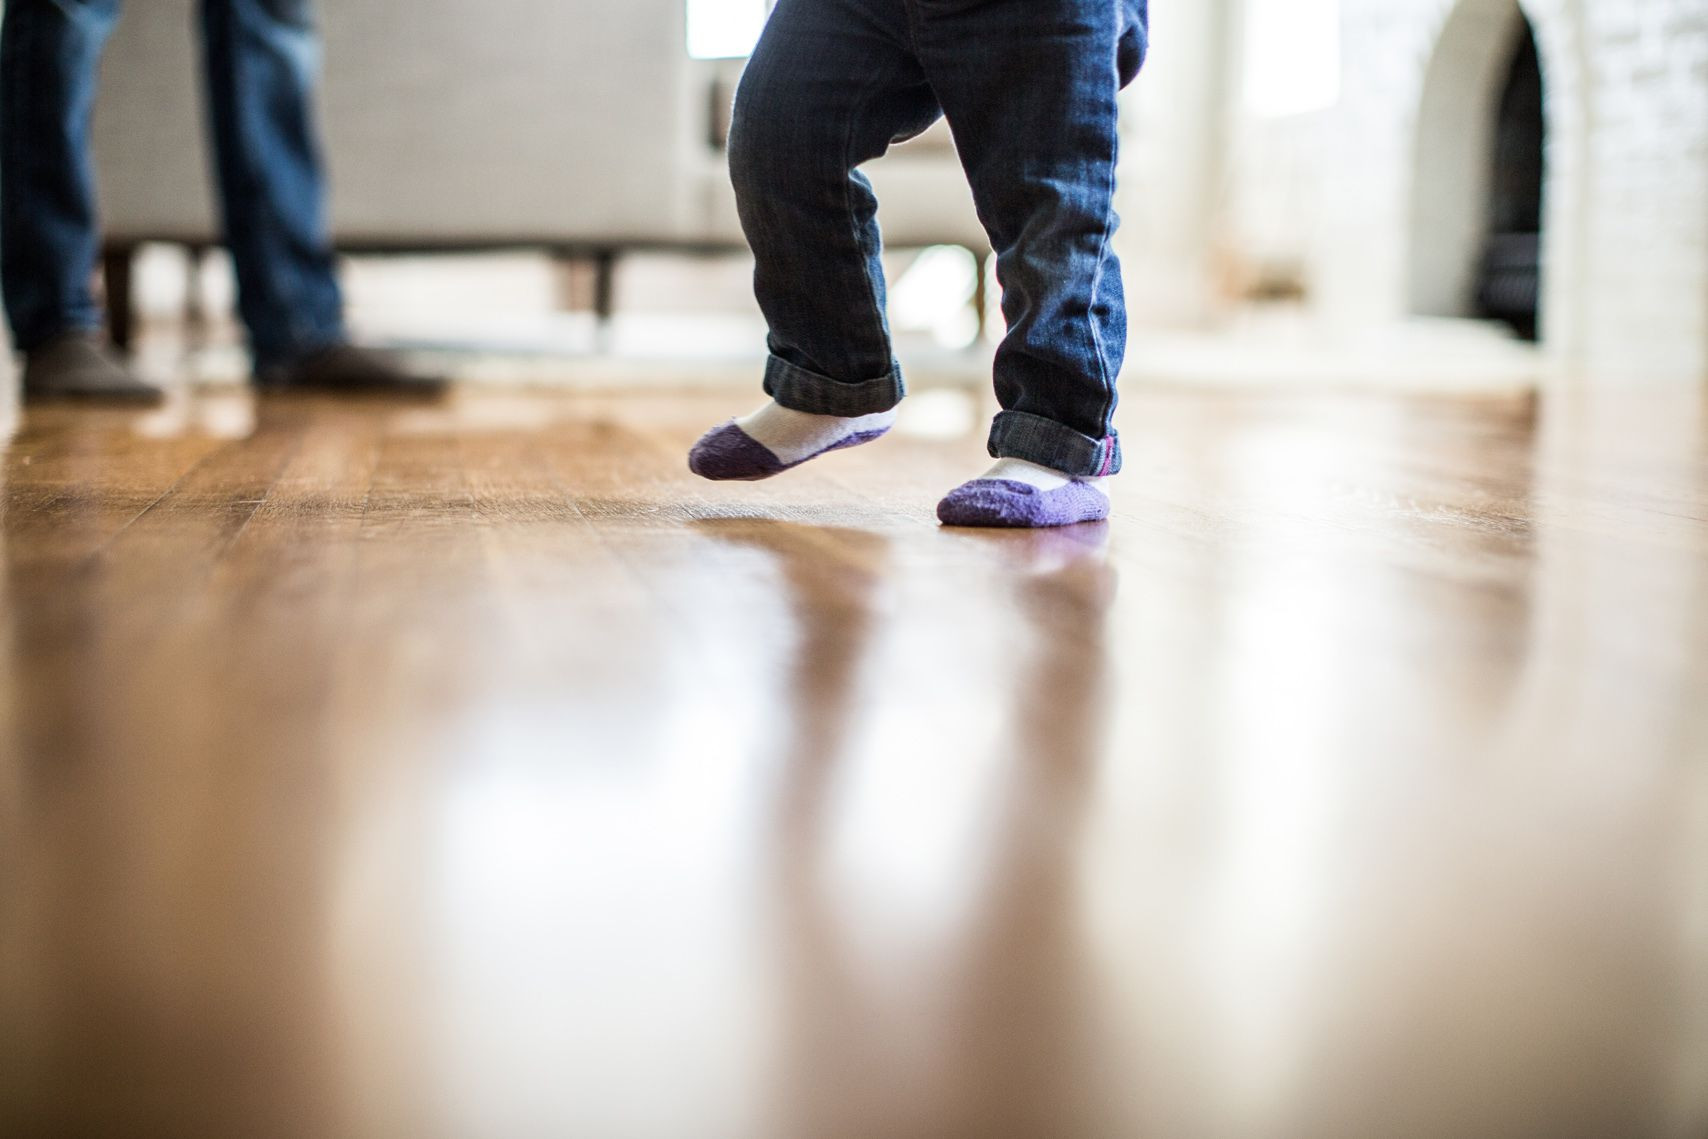 bona hardwood floor cleaning machine of 7 things to know before you refinish hardwood floors within what you need to know about reviving old hardwood floors via smallspaces about 579124615f9b58cdf3e1a841